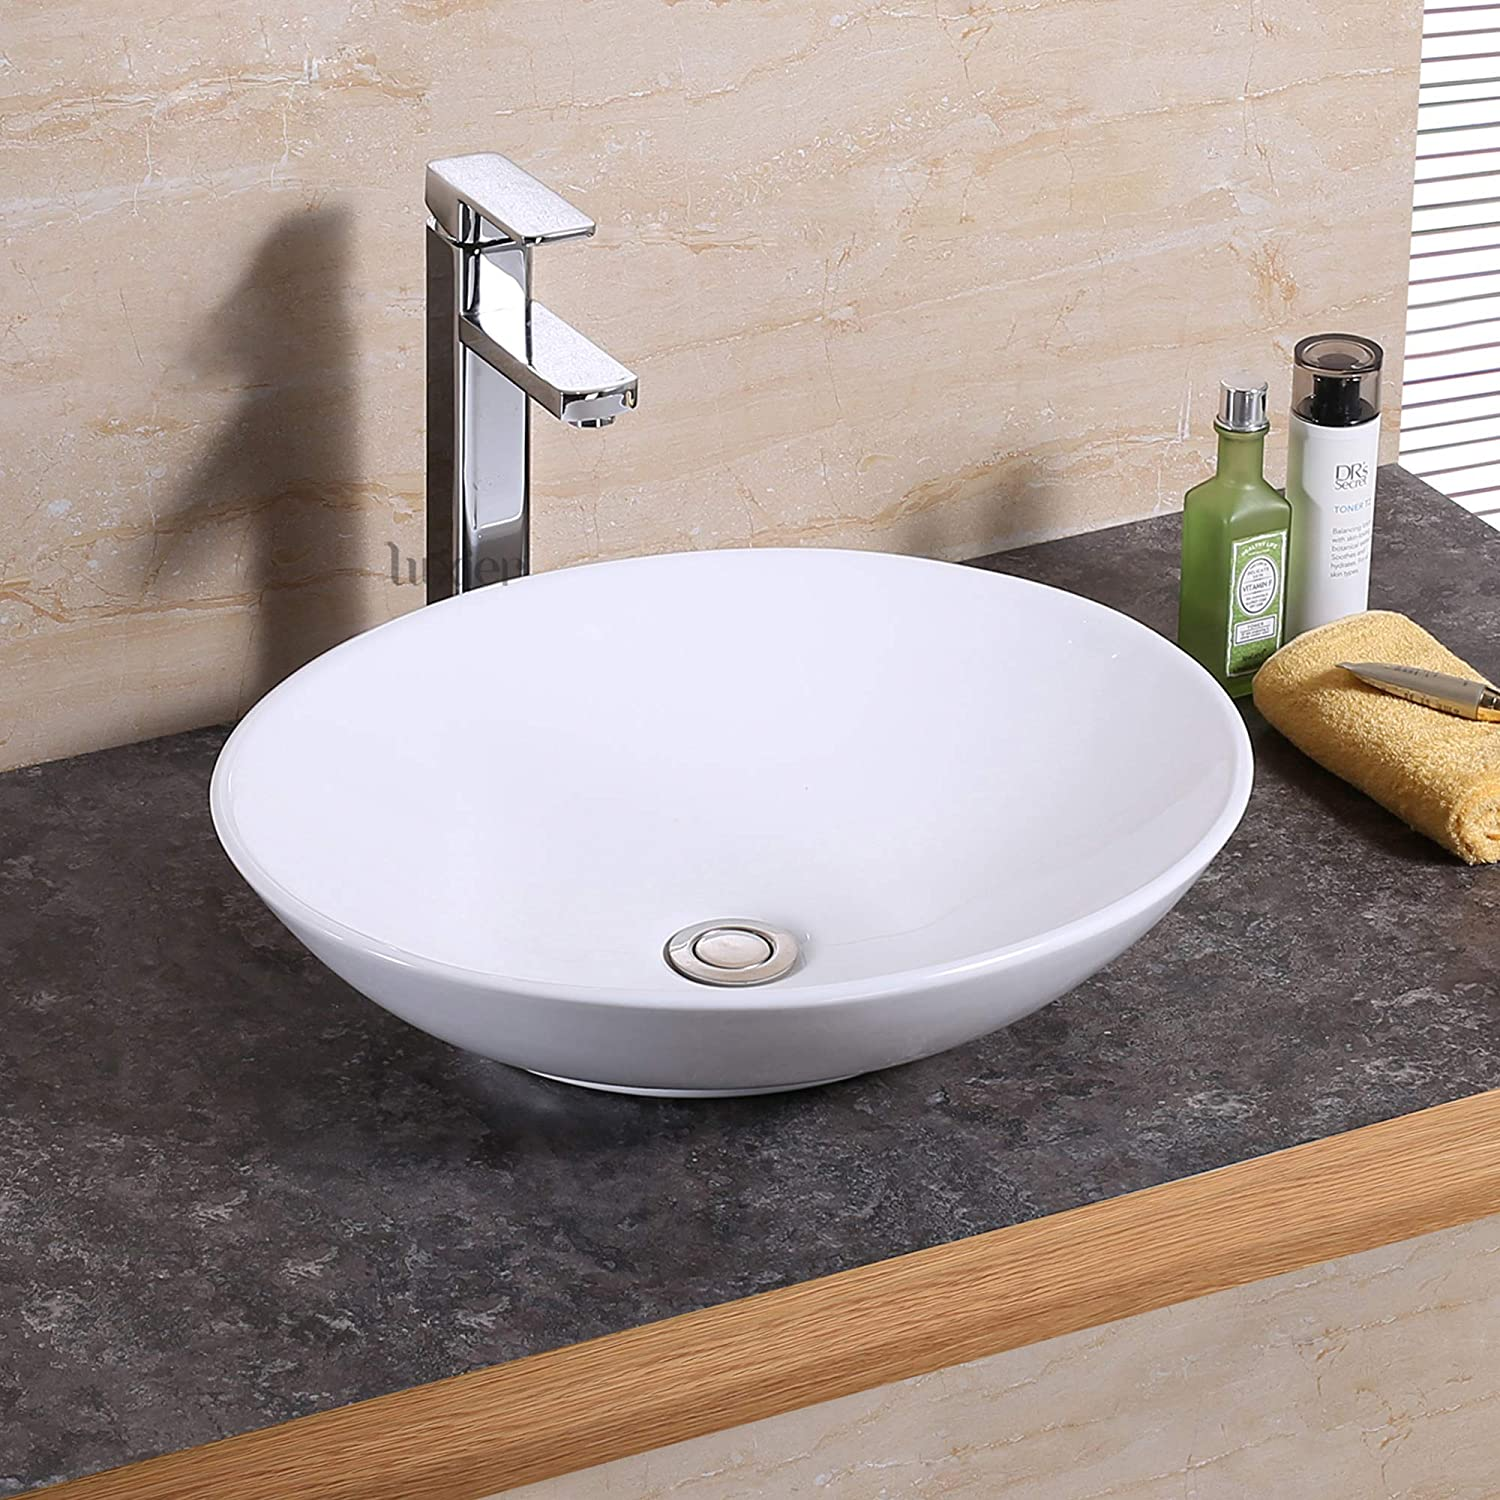 Luxier CS-023 Bathroom Porcelain Ceramic Vessel Vanity Sink Art Basin